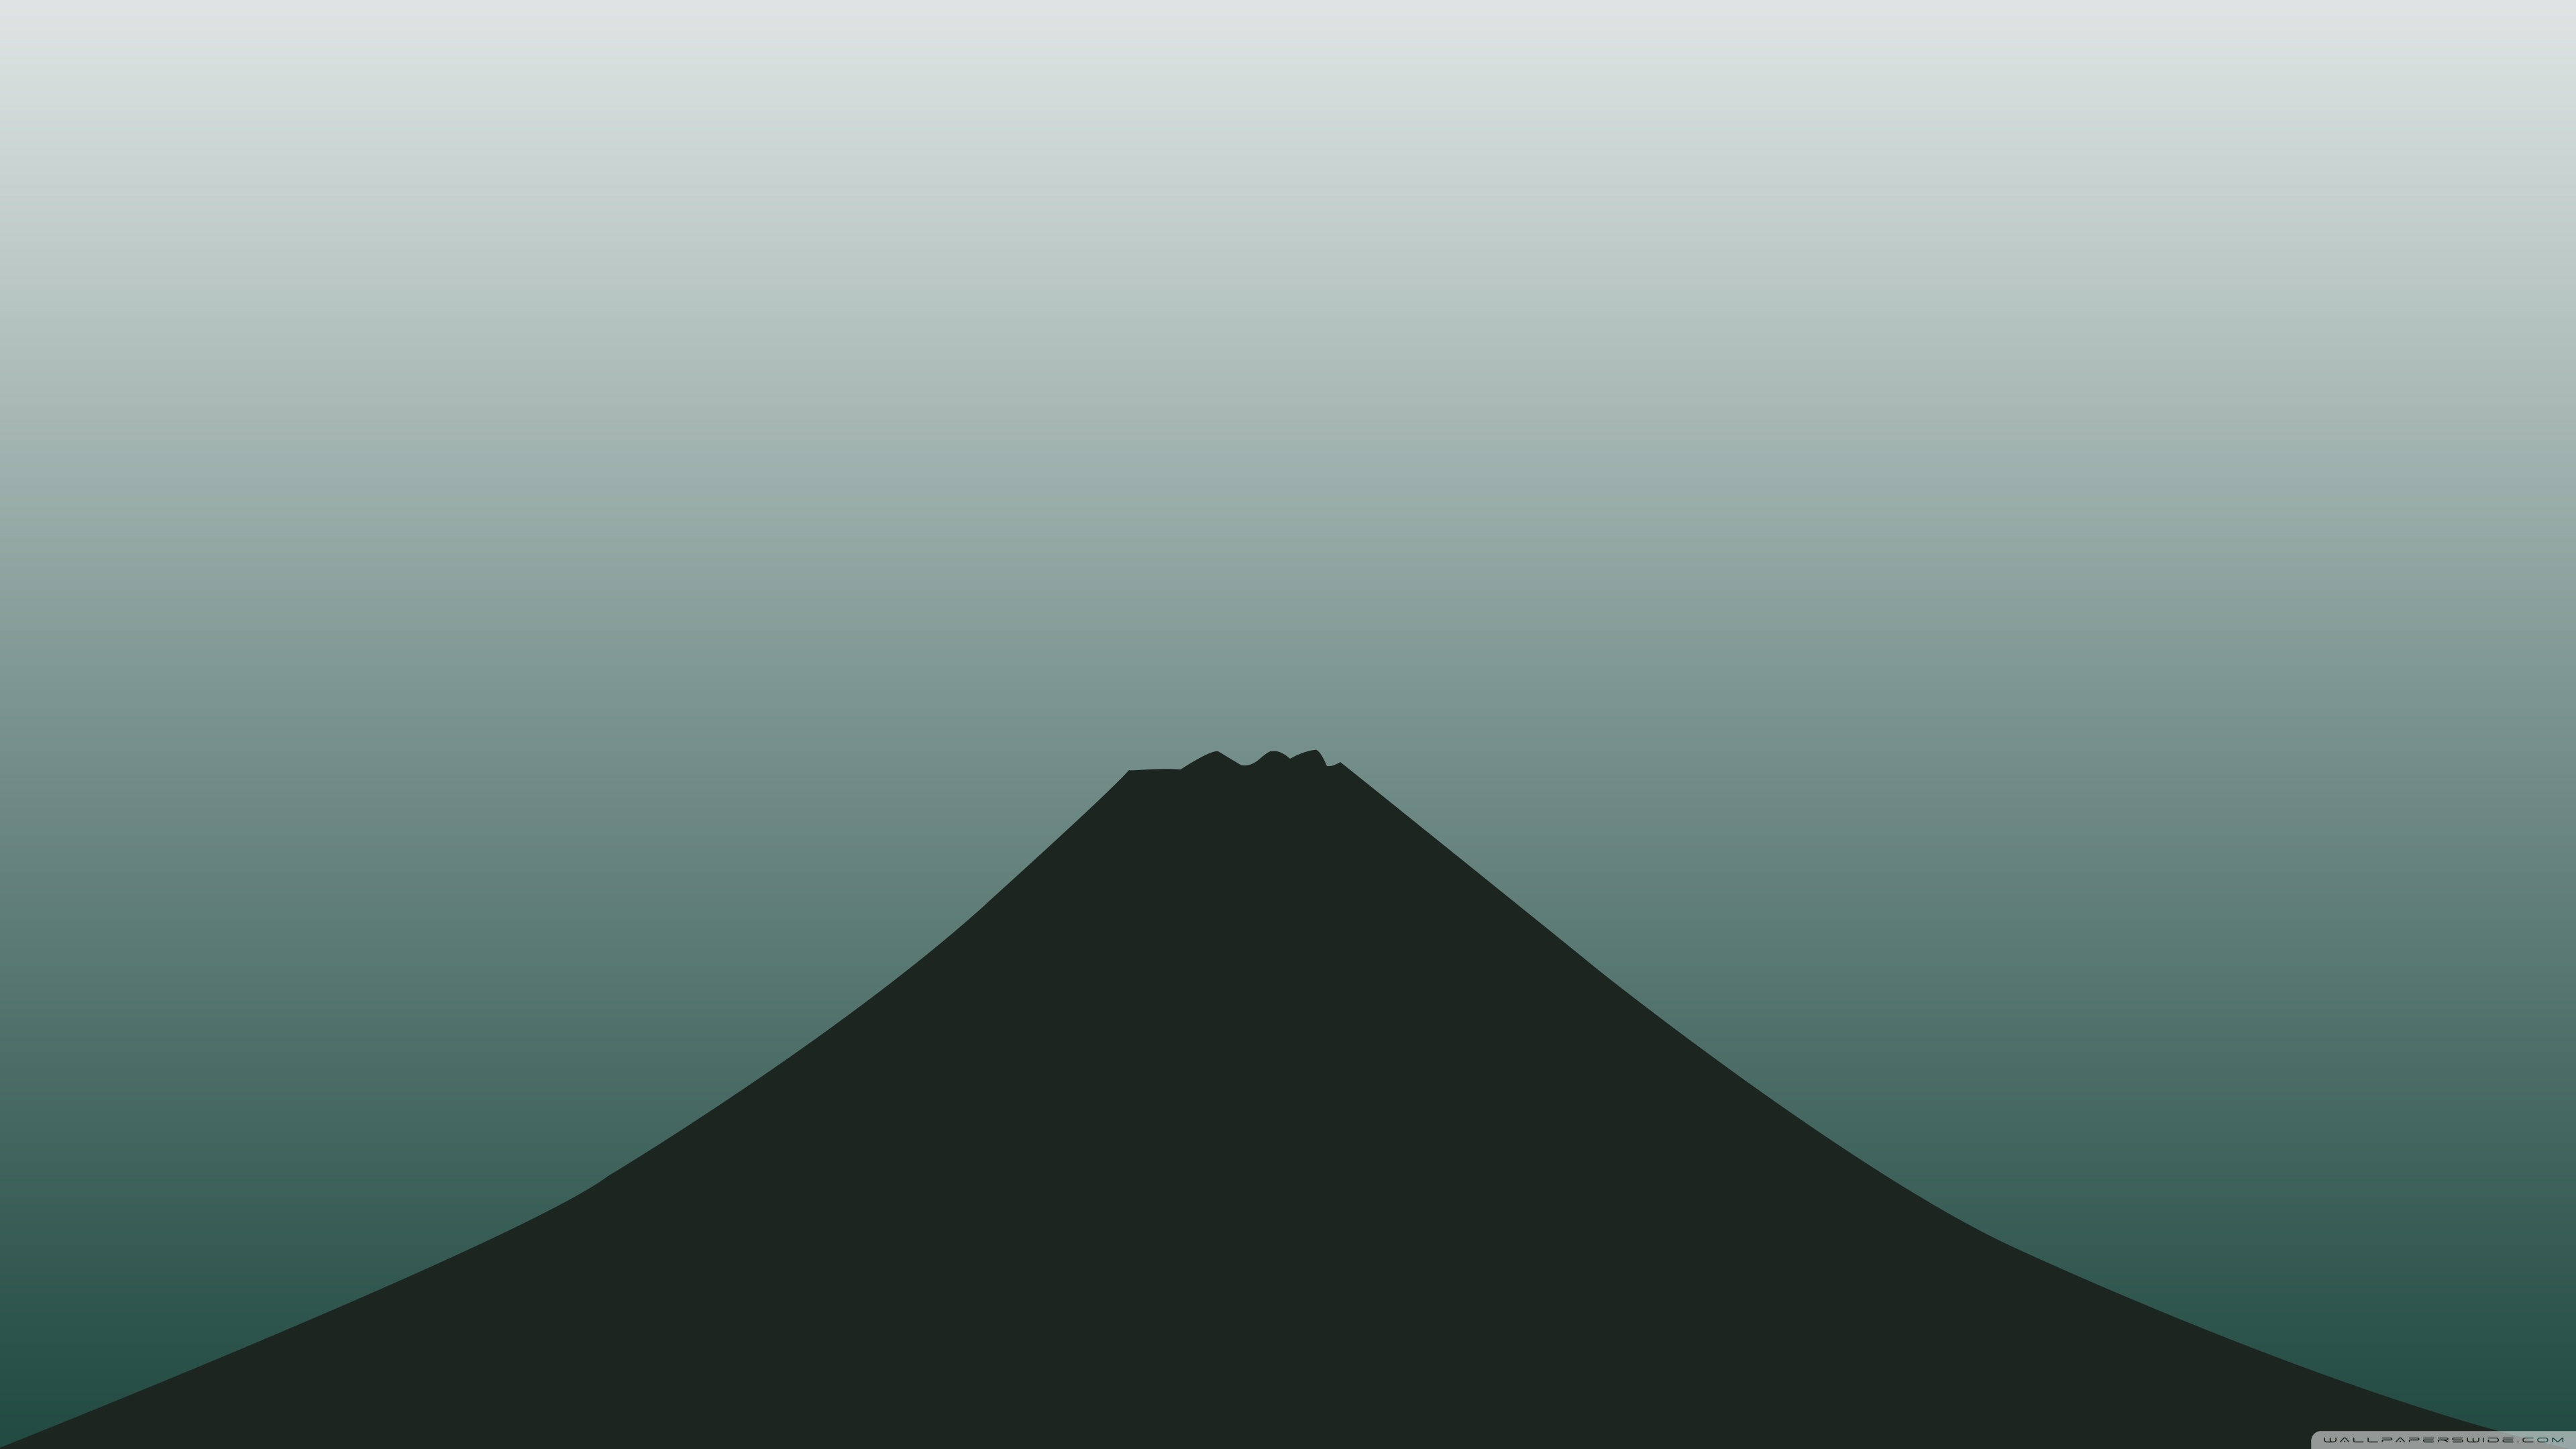 recovery mountain minimalist ❤ 4k hd desktop wallpaper for • wide